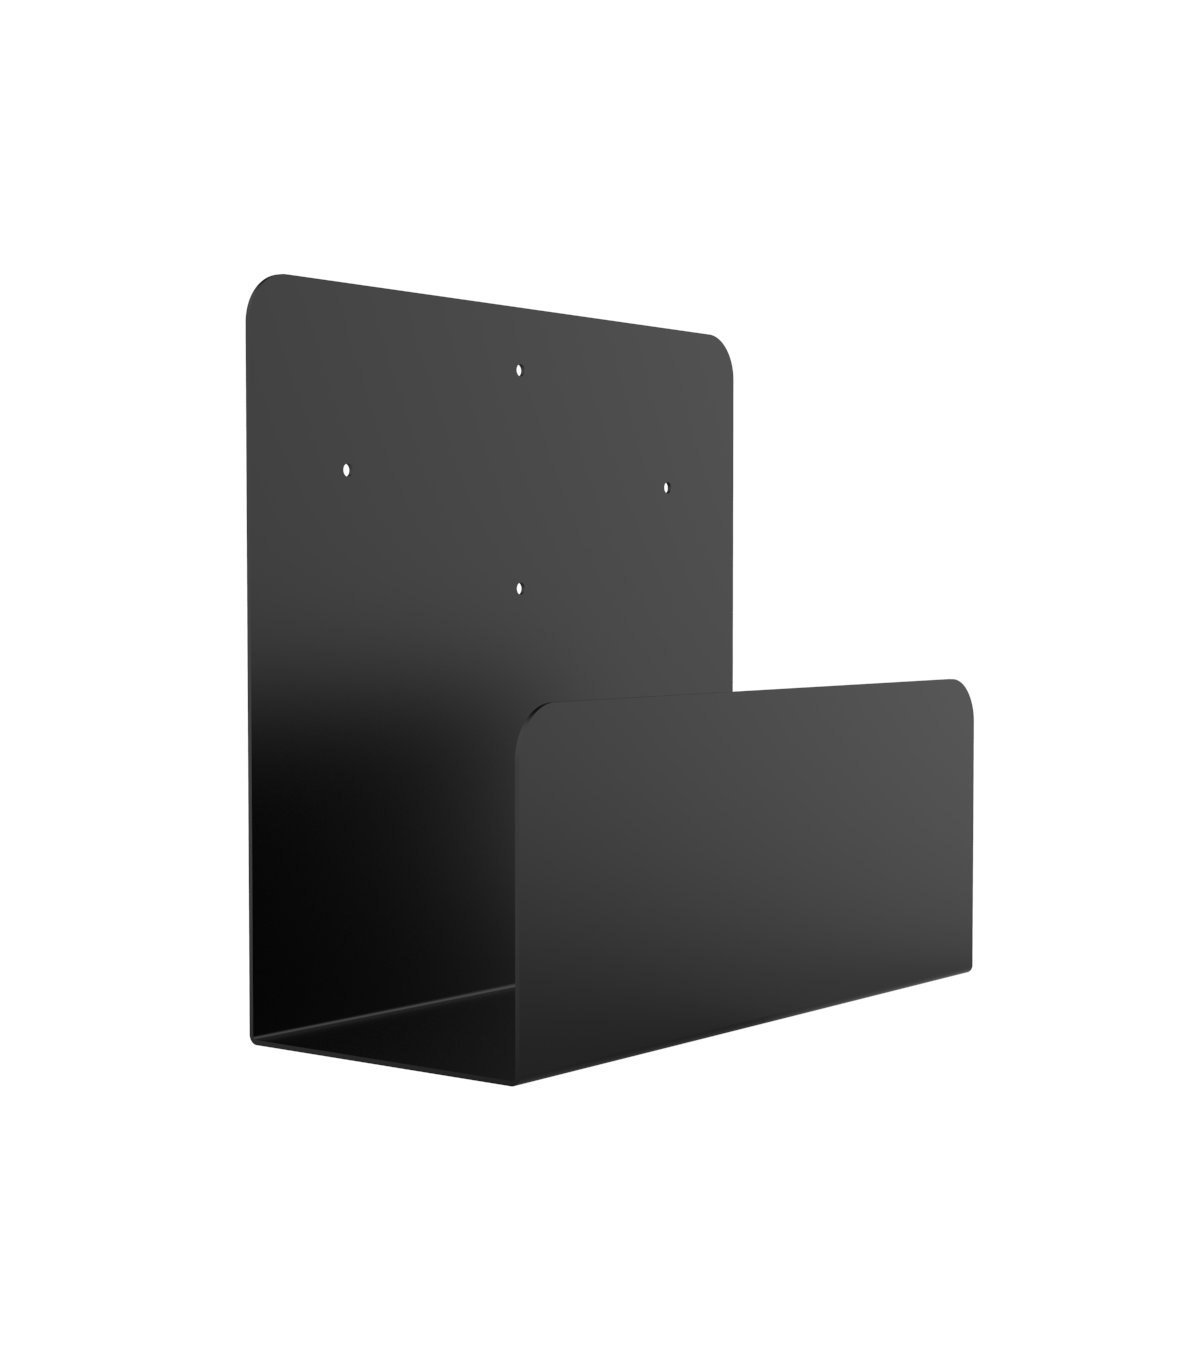 Pc Computer Wall Mount Scm 154 Cpu Mount Oeveo